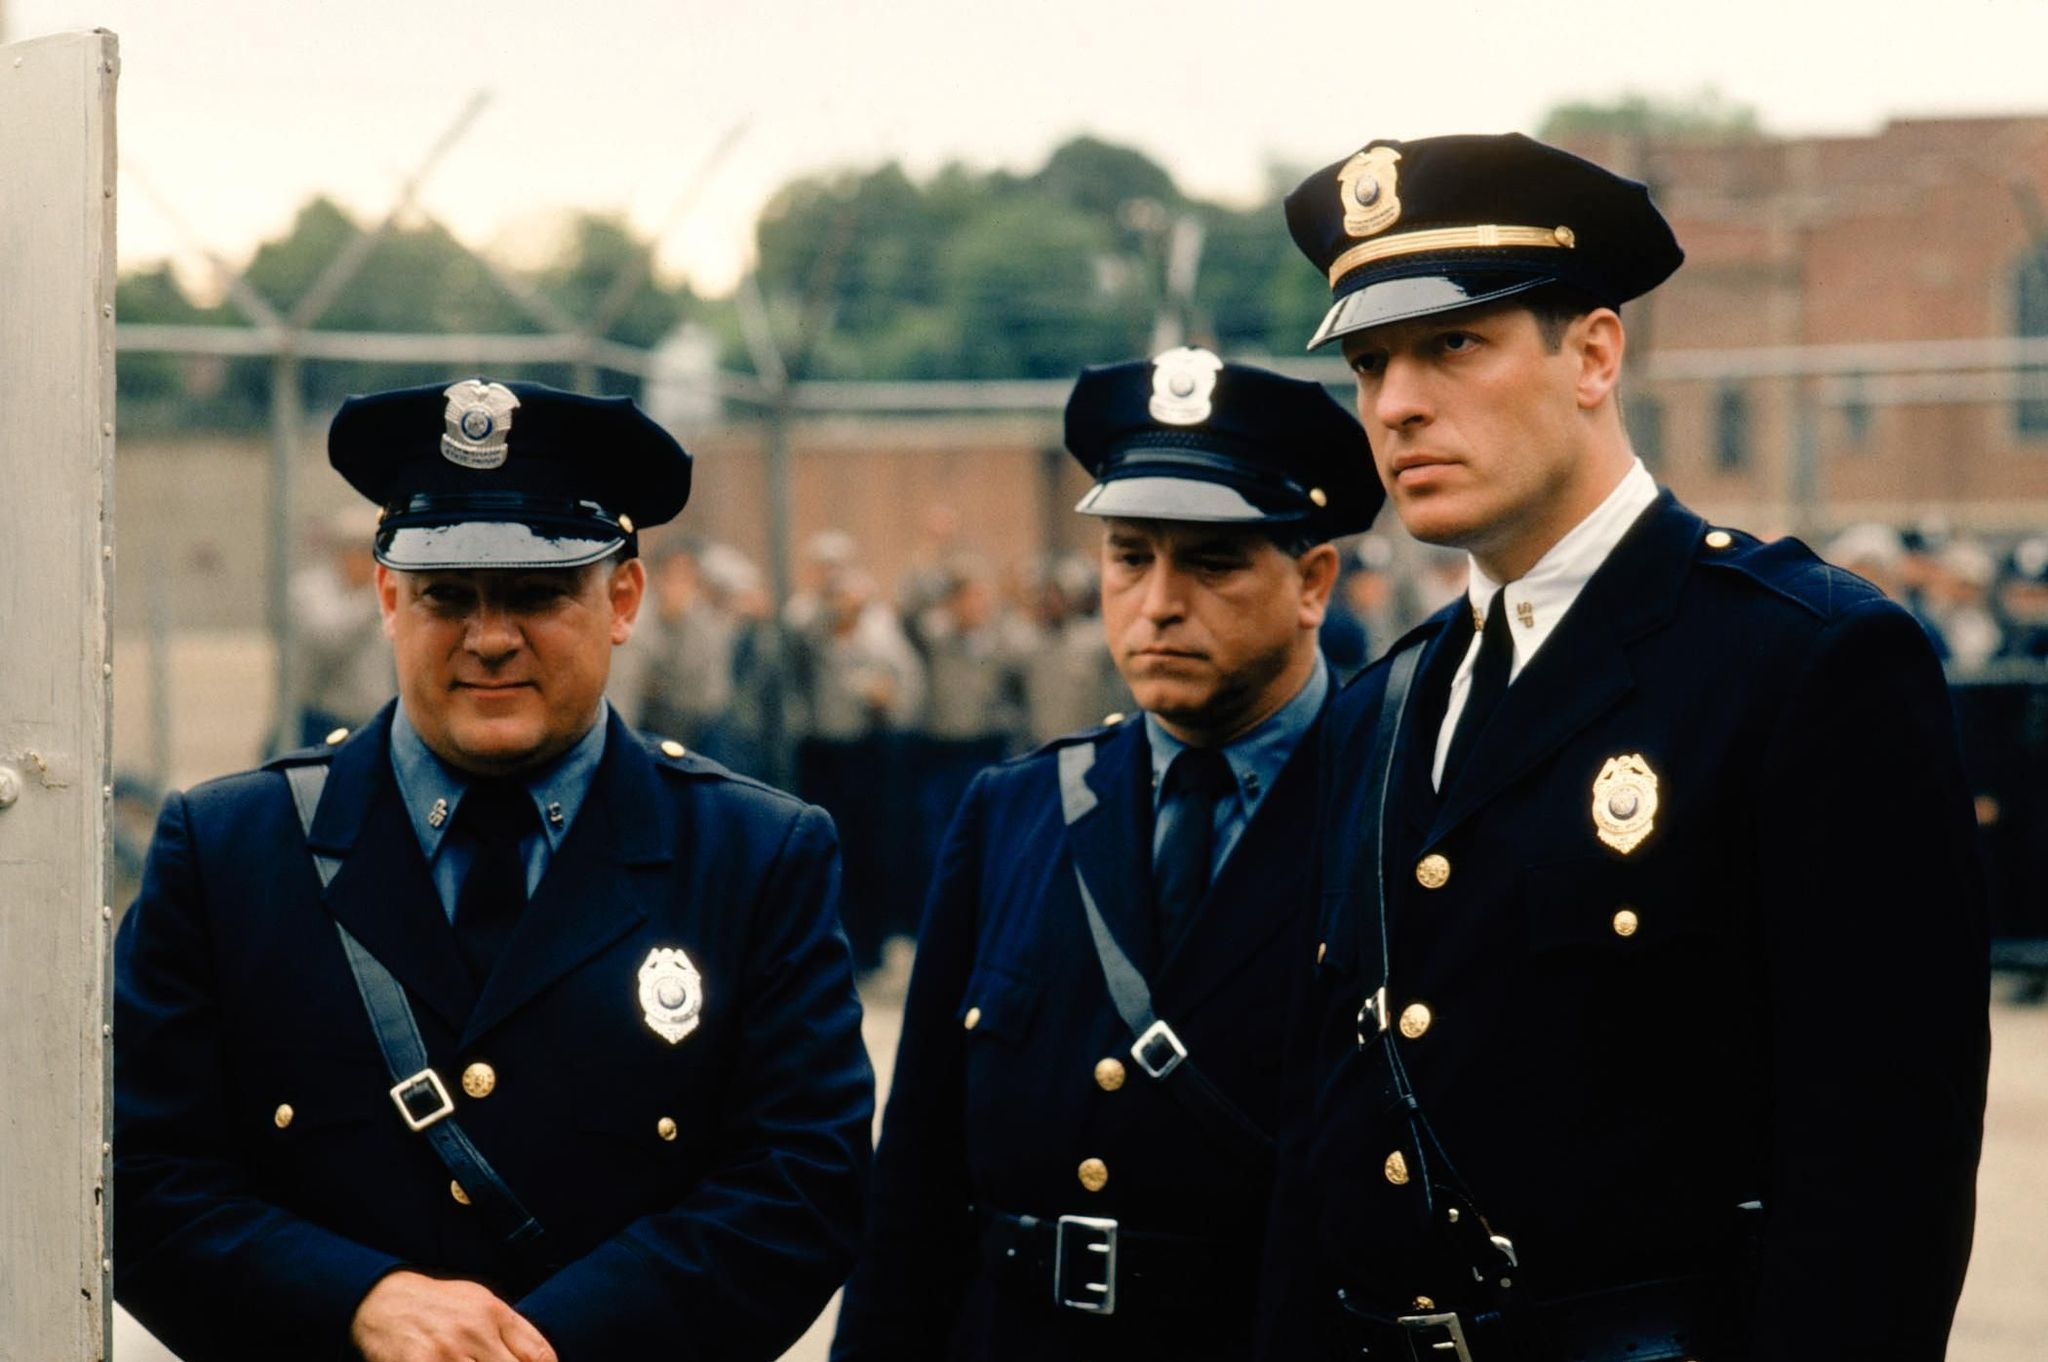 Clancy Brown, Dion Anderson, and Brian Delate in The Shawshank Redemption (1994)